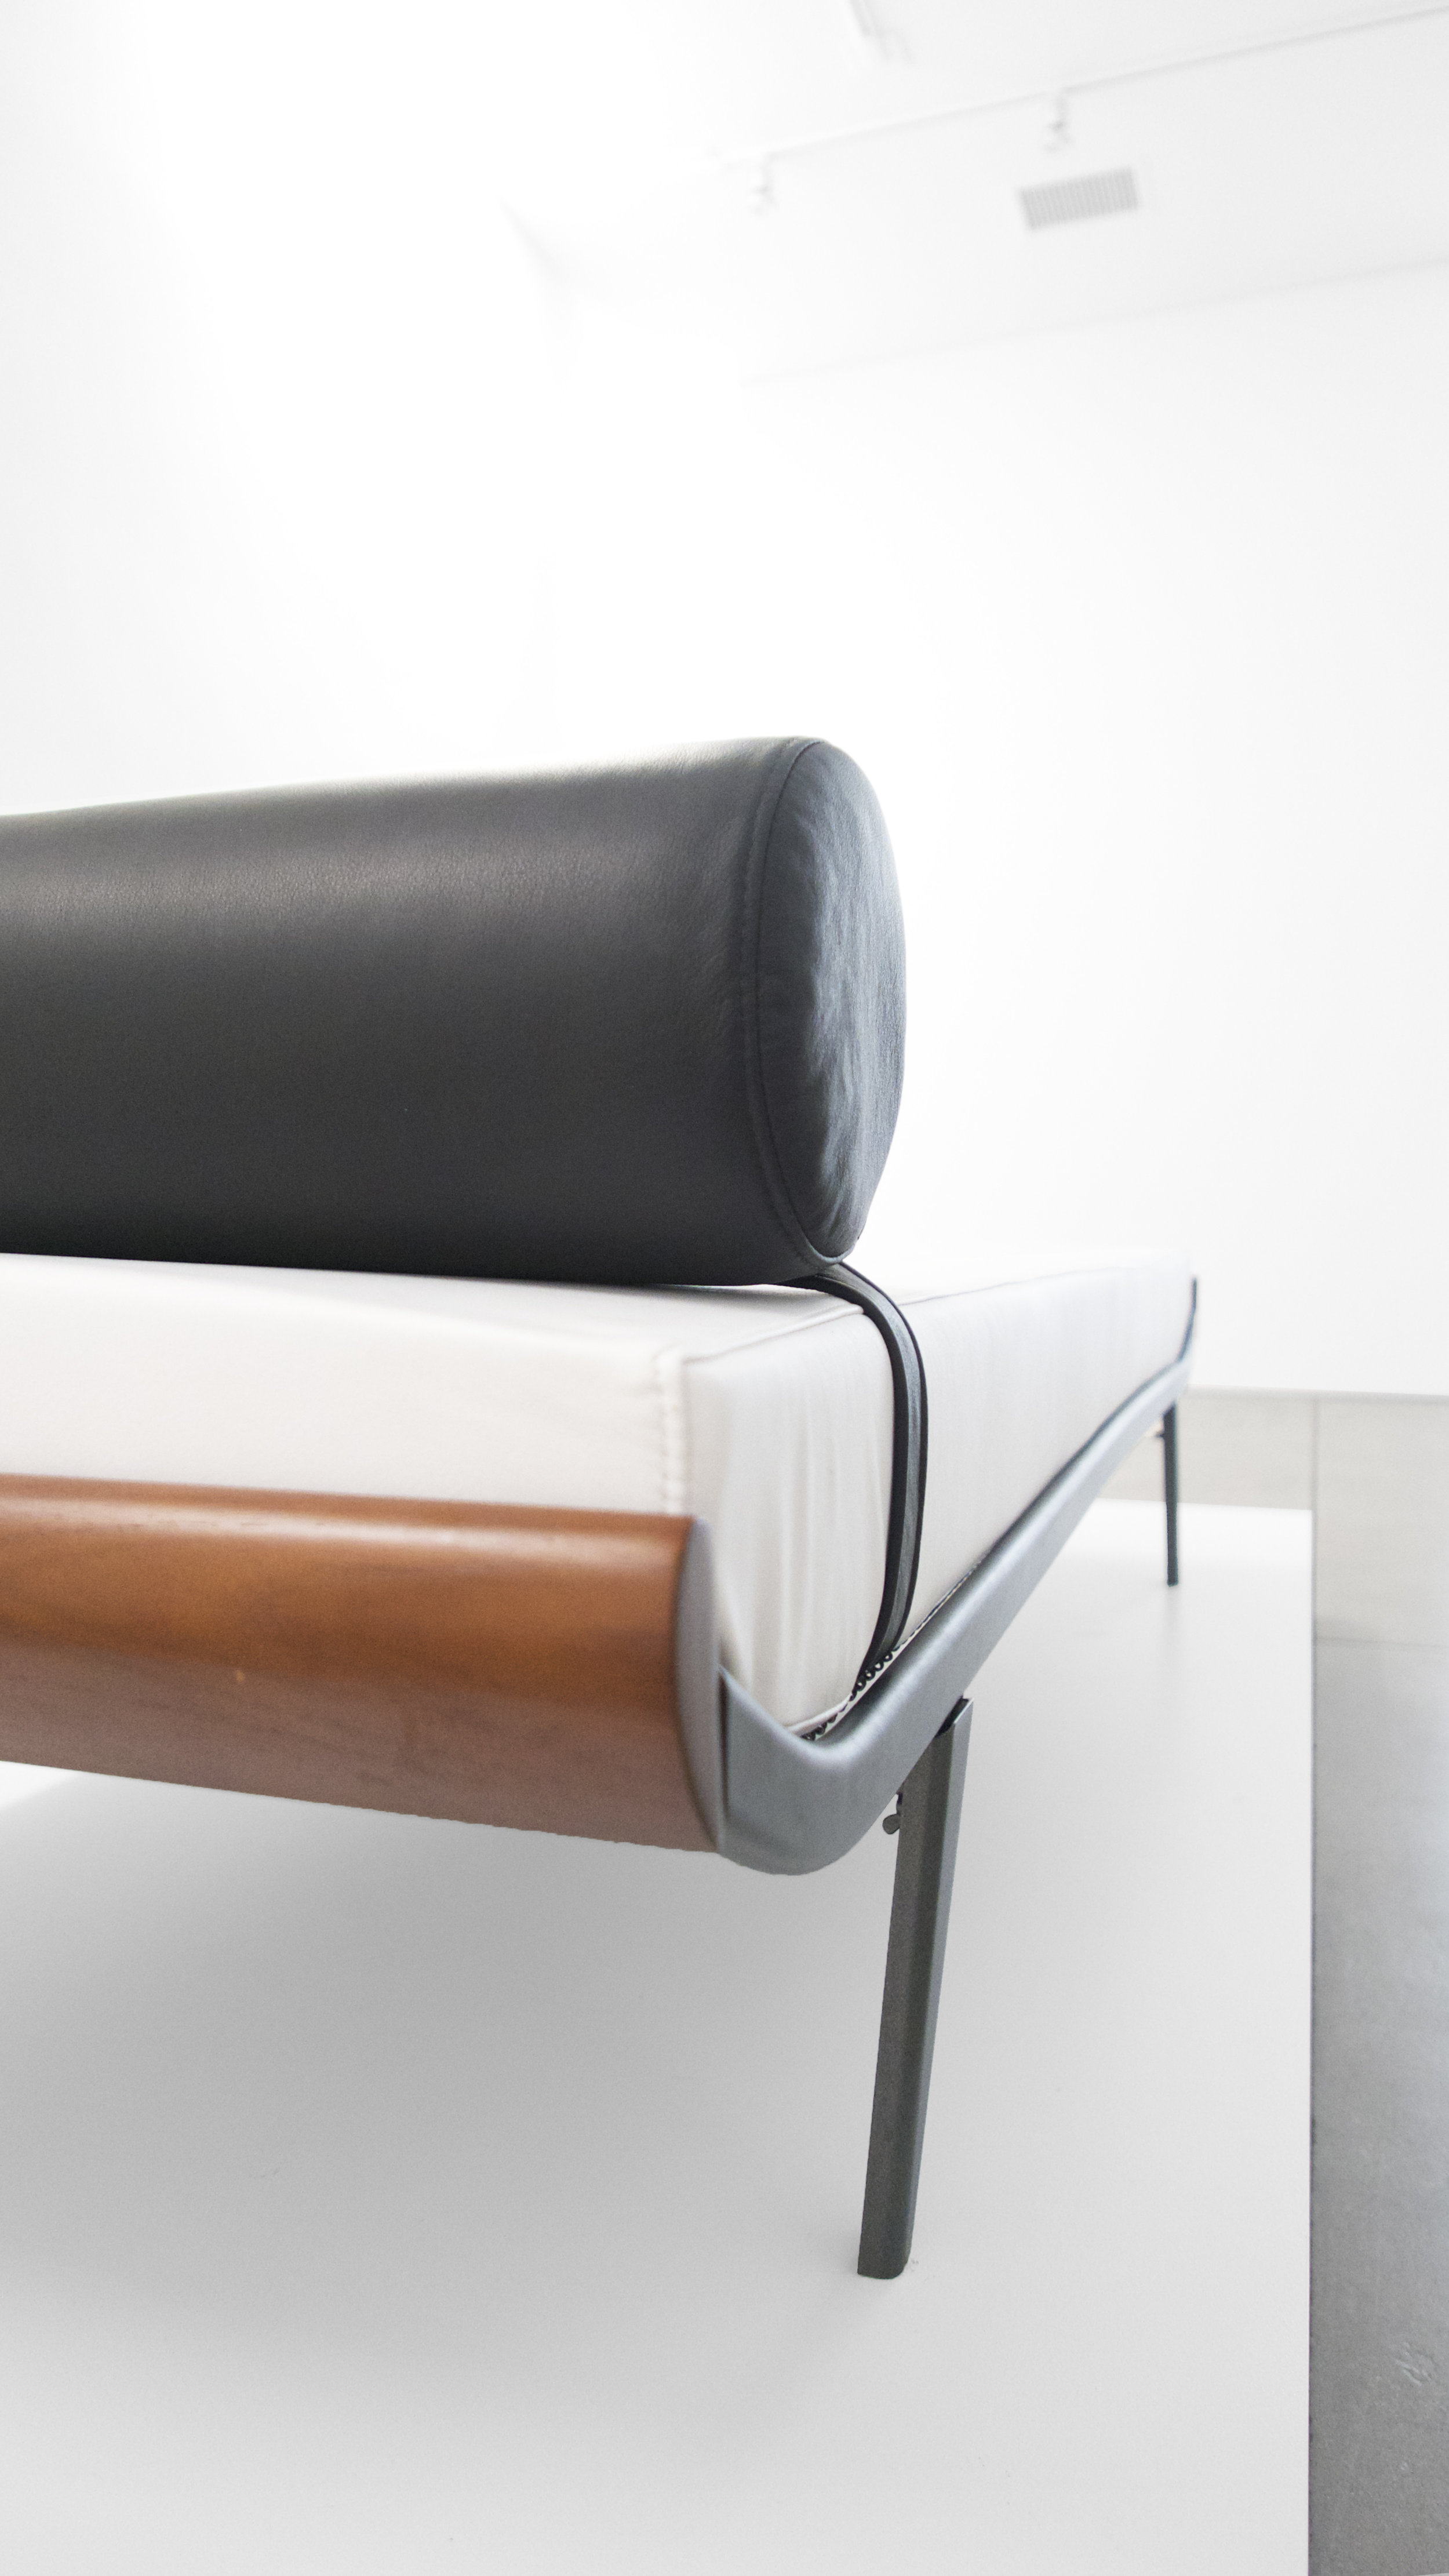 6. A.R. Cordemijer, 'Cleopatra' Daybed for Auping, c. 1960s, leather, teak, powder-coated metal, 23H x 32W x 76.5L inches.jpg